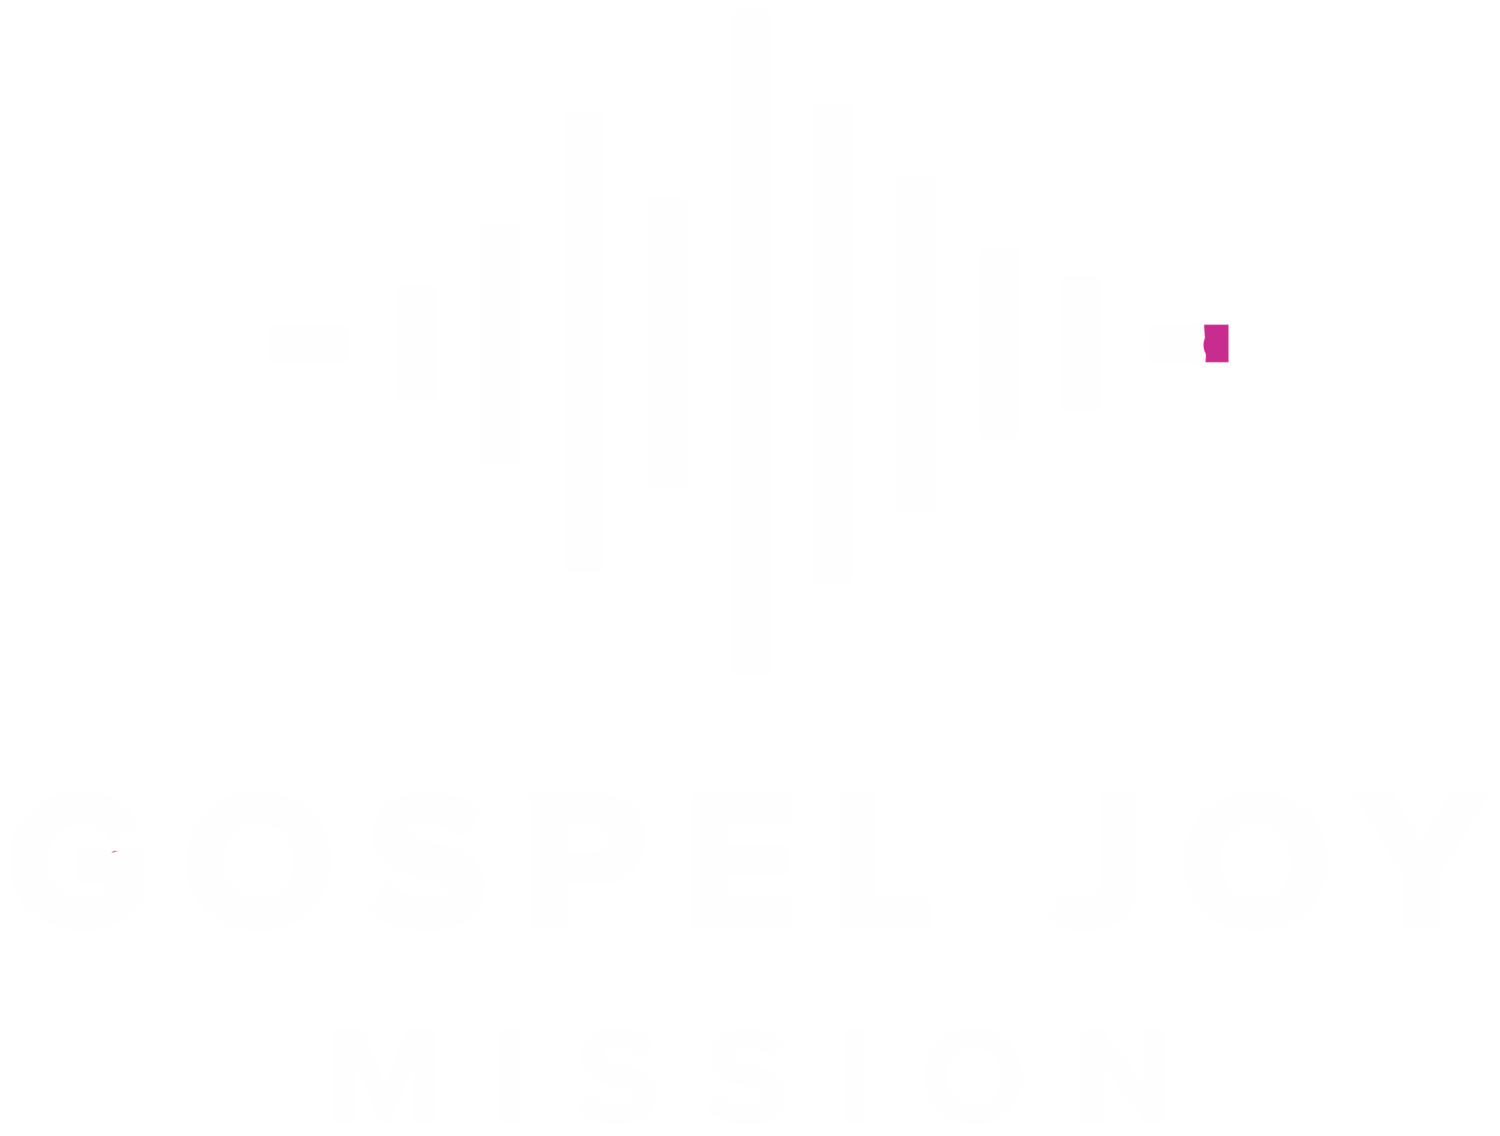 Gospel Joy Mission